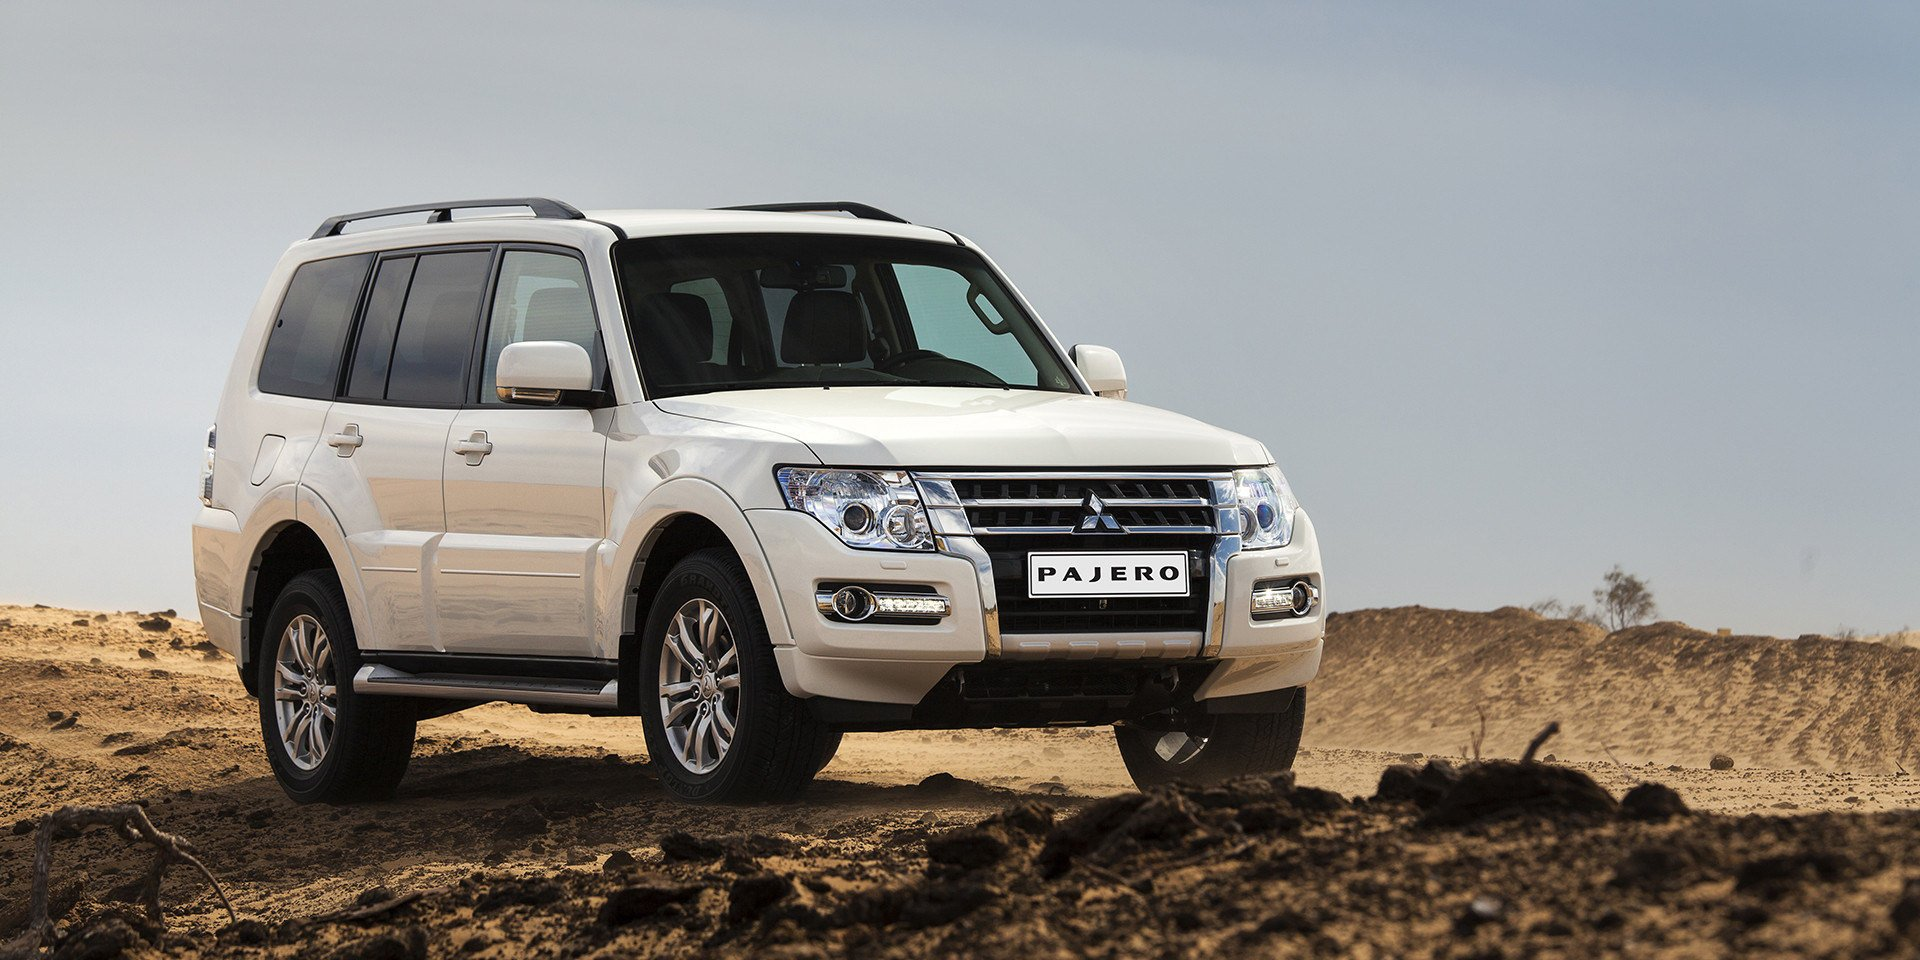 It won't be long until the iconic Mitsubishi Pajero SUV vanishes from the market. The sales end in Japan soon, shortly followed by other countries. But the company claims it may as well keep the model name on the list – albeit for an entirely different vehicle.